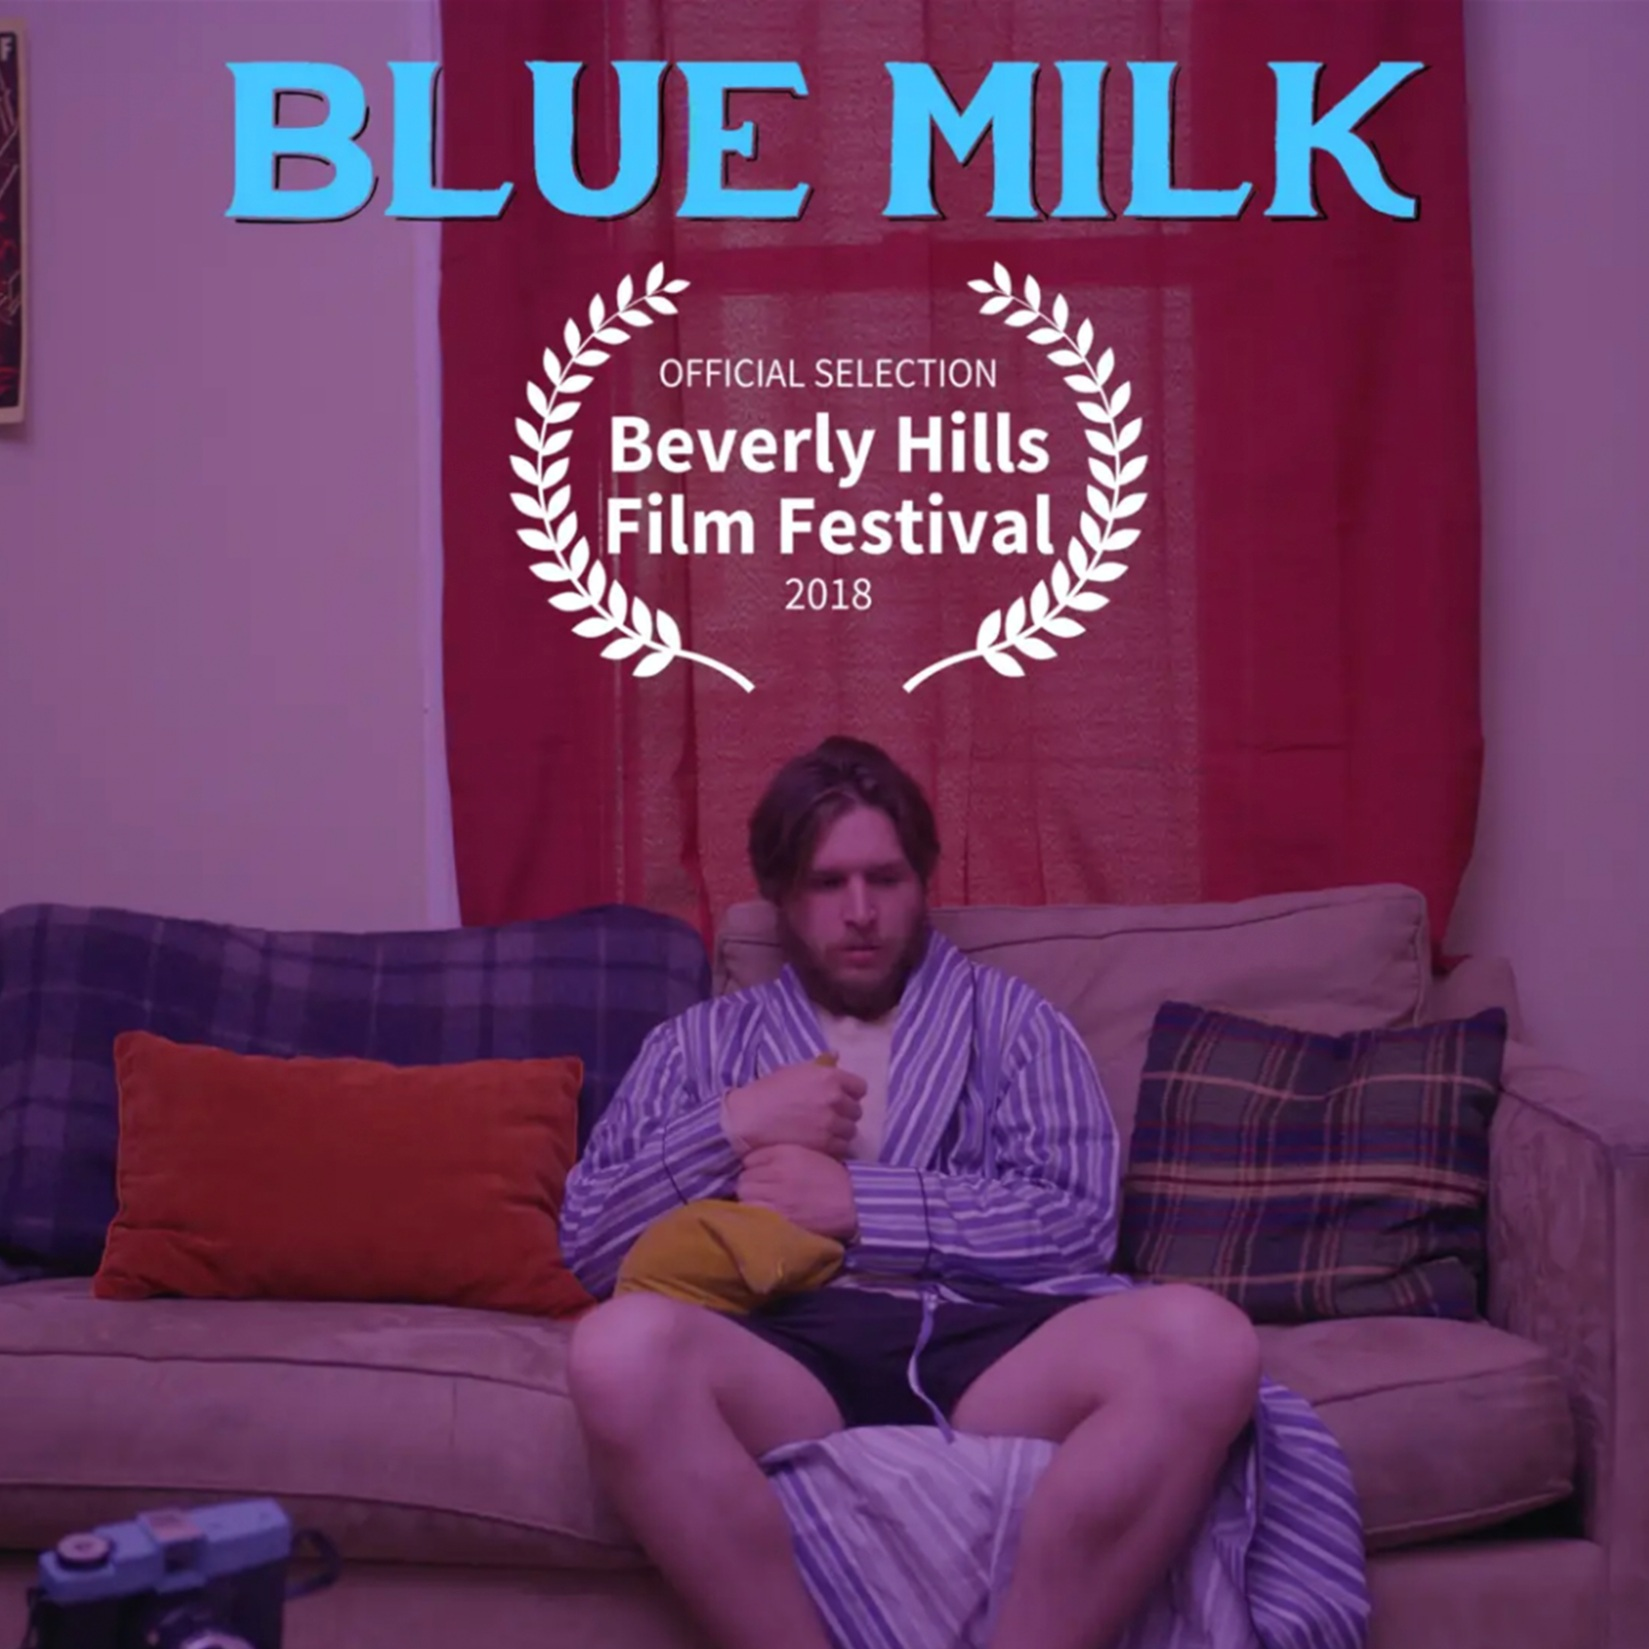 Blue Milk (2018) - Official Selection at the 2018 Beverly Hills Film Festival, 'Blue Milk' is the story of a man caught in the twisted reality of another timeline. Through the trials and tribulations of having to deal with romantic love, death, loneliness, and fight or flight syndrome, Man is left beguiled and puzzled as he opens his front door to the enlightenment of infinite possibility.Watch on Amazon Prime Video ➝